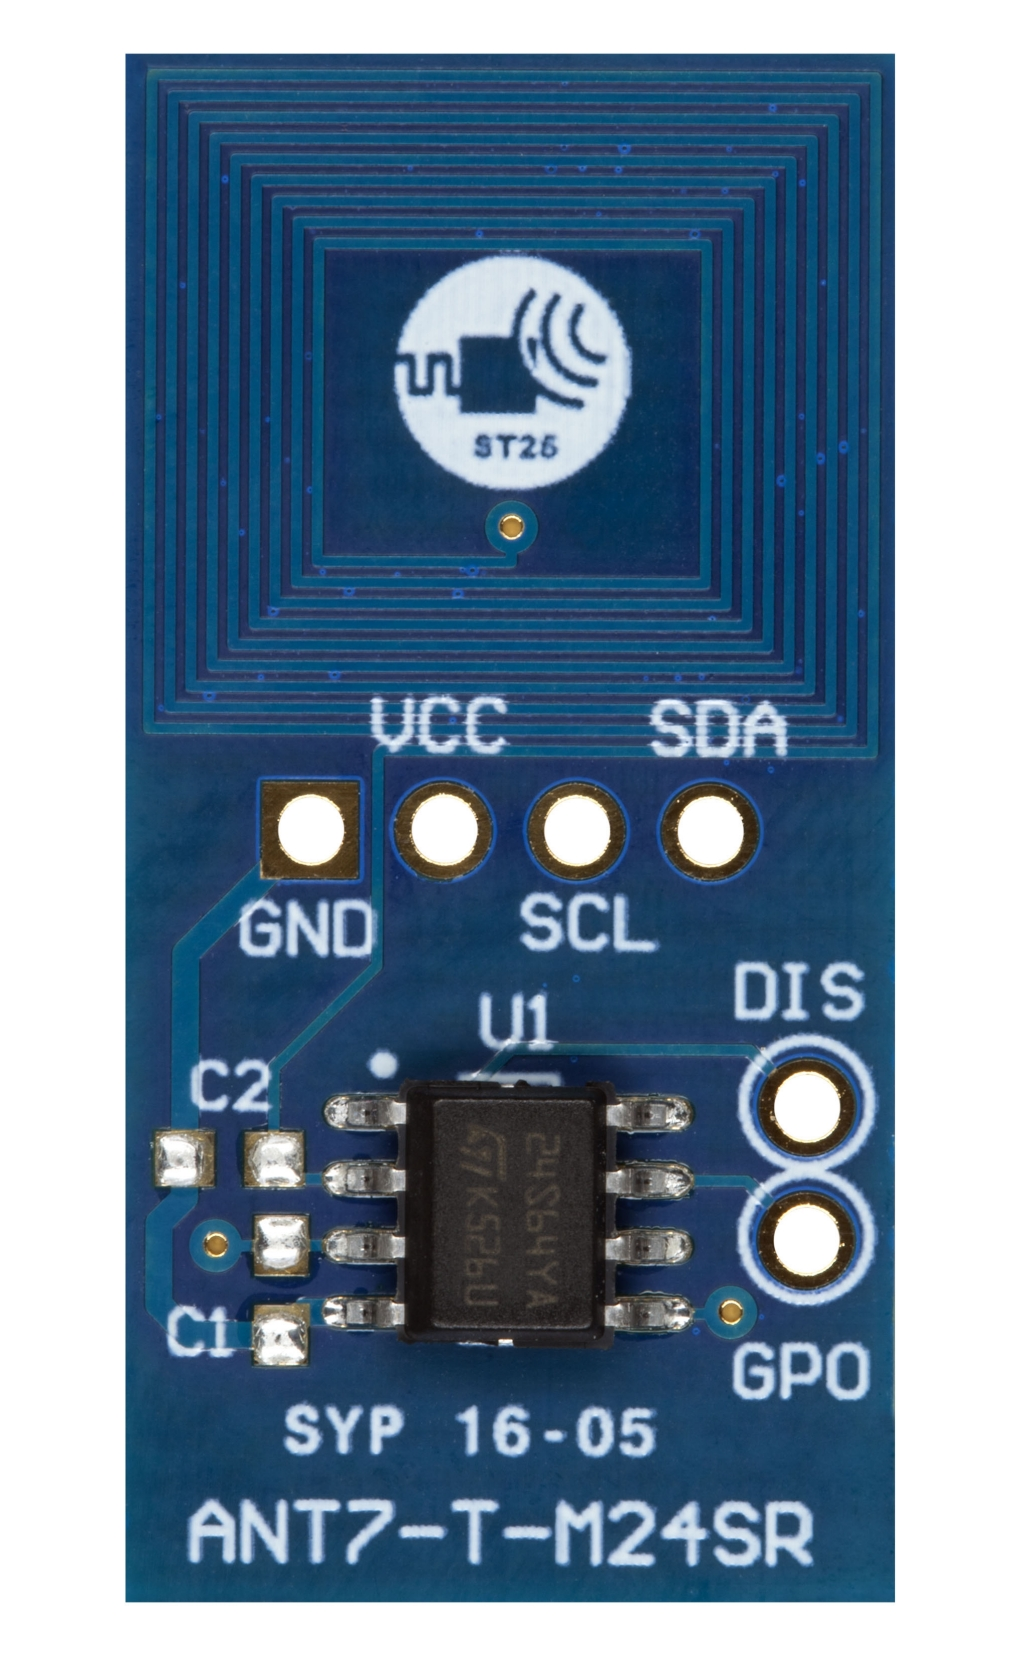 ANT7-T-M24SR64 board photo